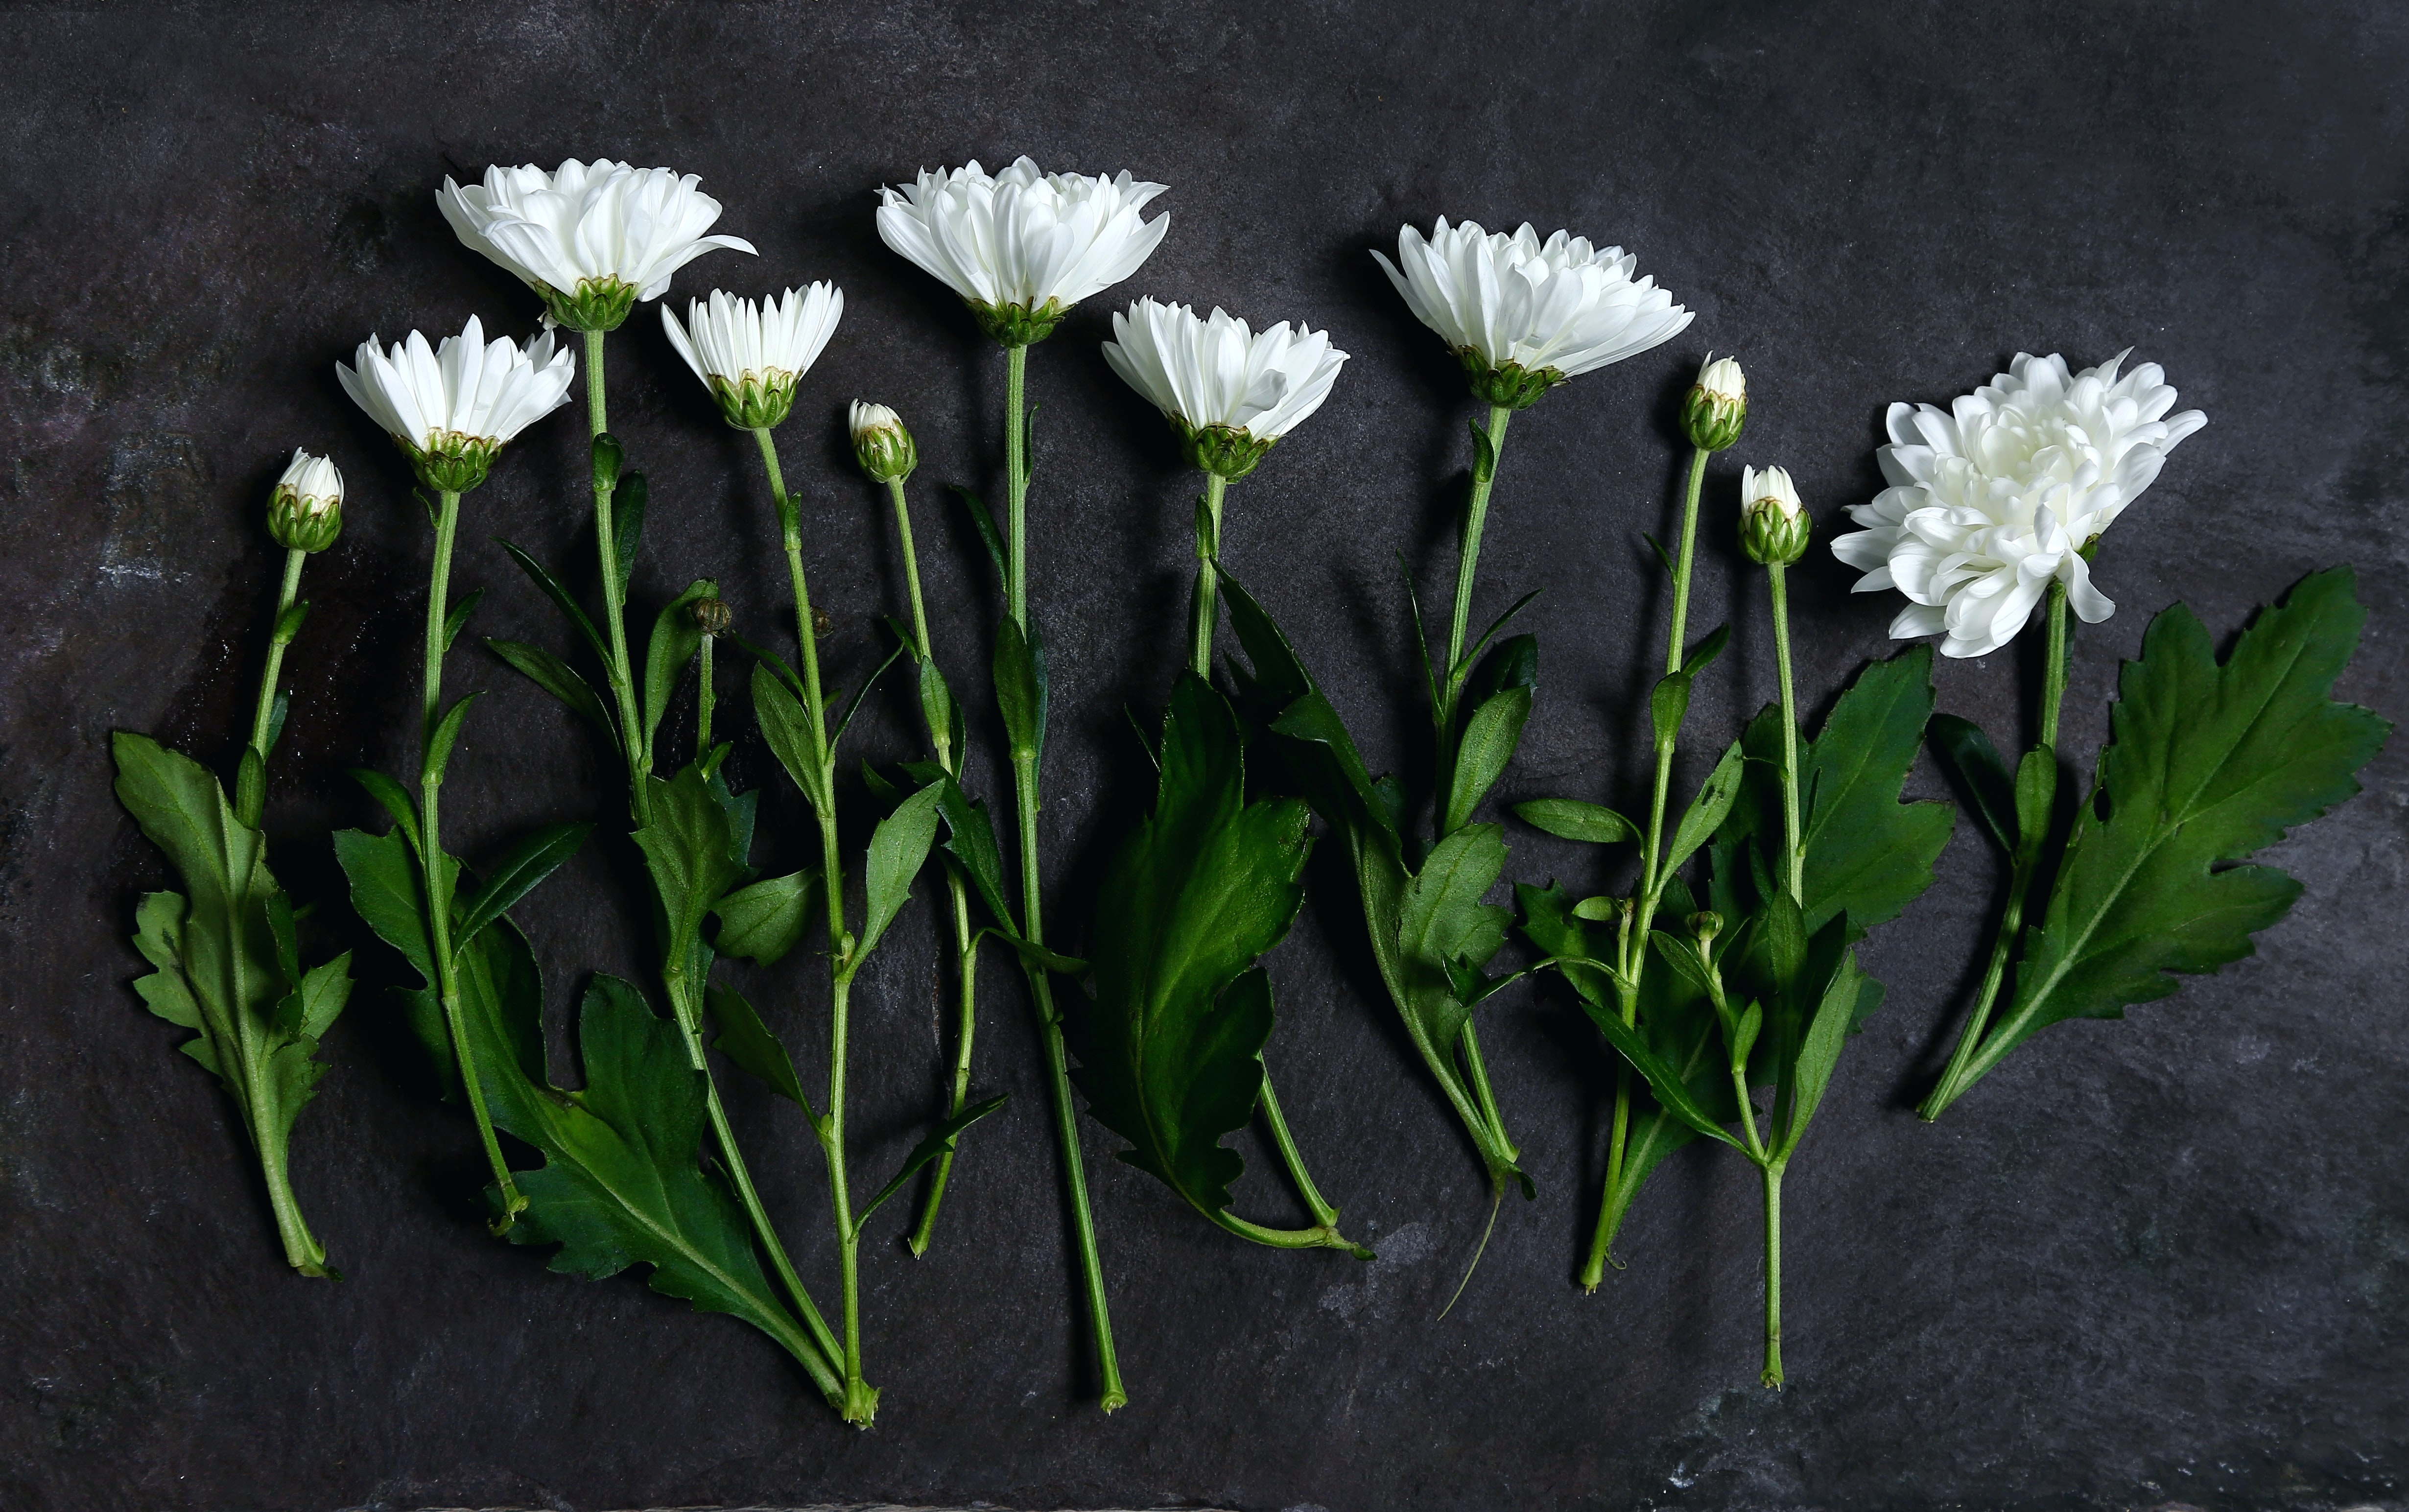 An overhead shot of white chrysanthemum flowers on a dark surface